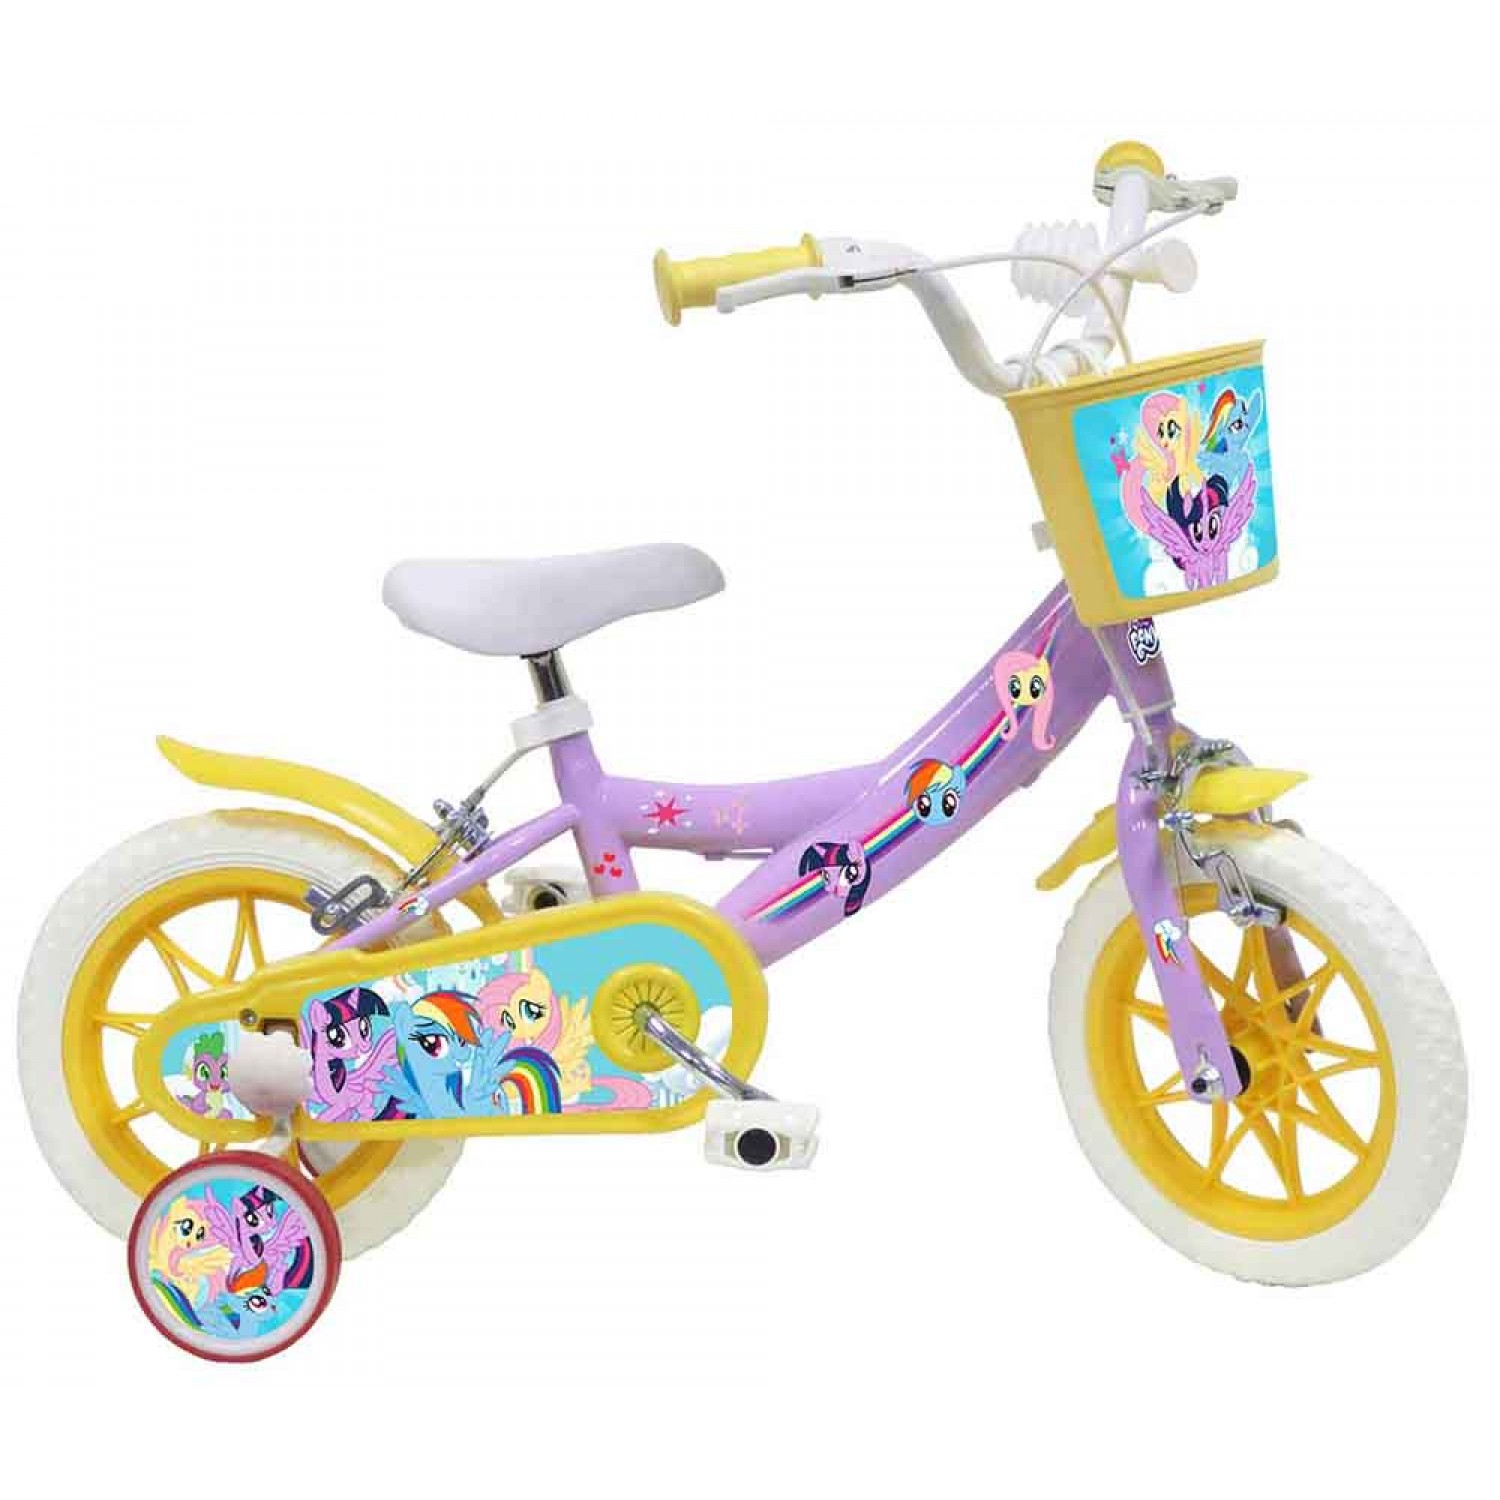 4f56041b8e8 -28 % Bicycle MY LITTLE PONY 12 inches in White-Purple-Yellow color 17284-12